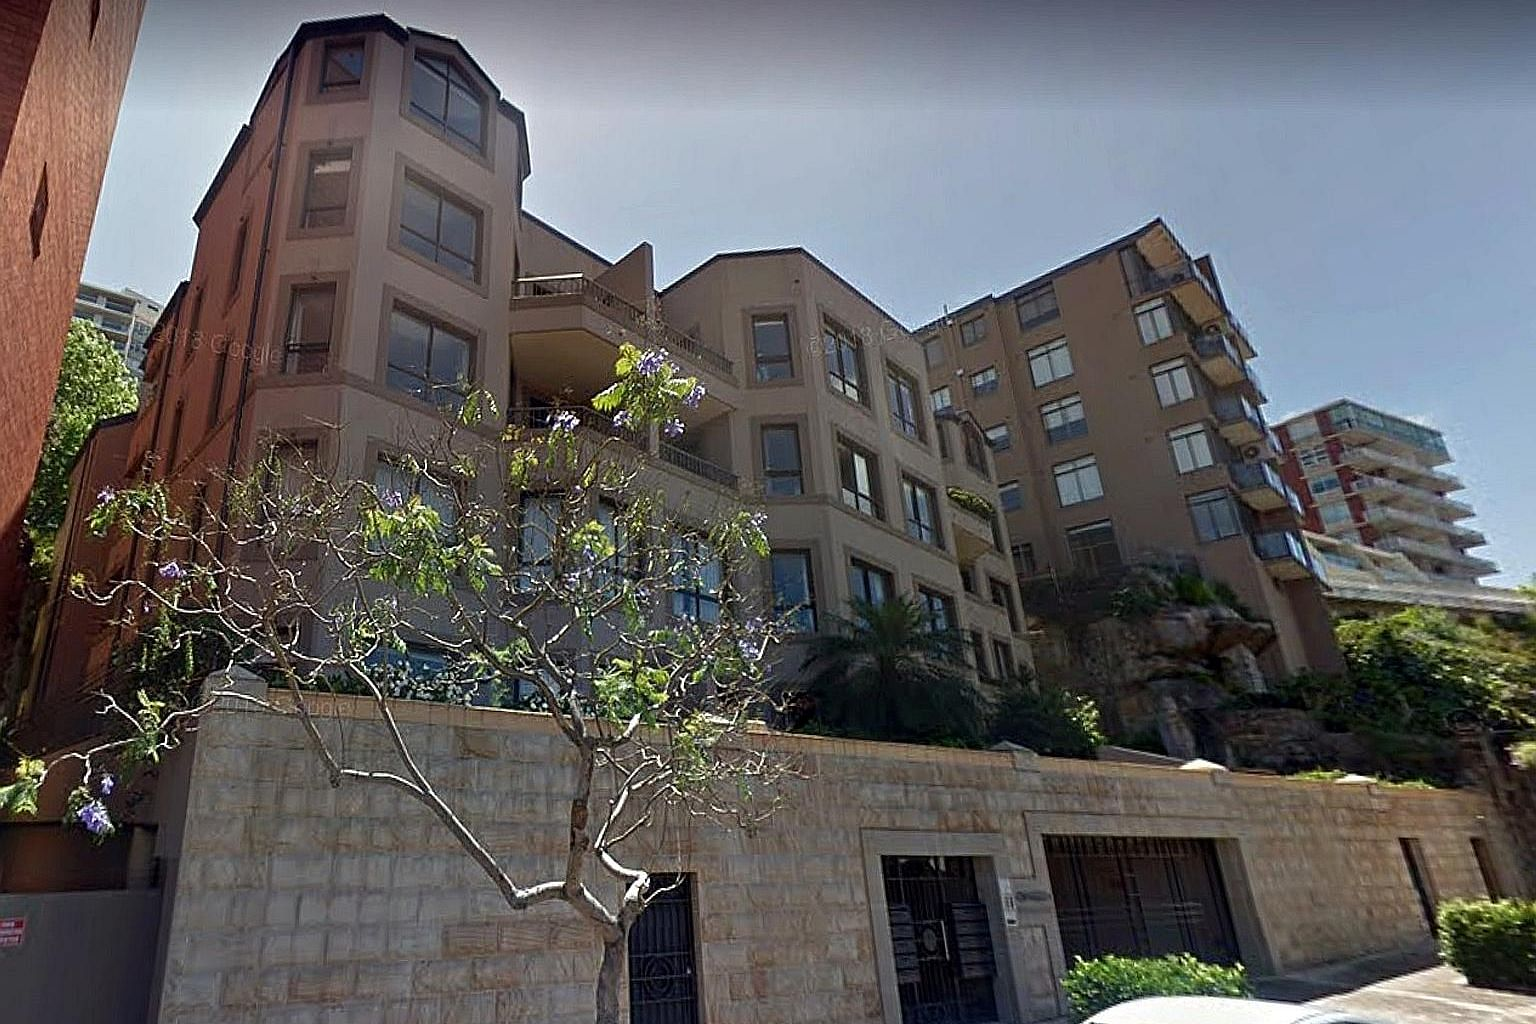 Searches revealed that Mr Wang Zhi Cai owned a condo unit in Kirribilli (above), New South Wales, but attempts to serve the papers on him there failed. The Australian court has allowed MBS to send notice of the Singapore judgment to his known home an